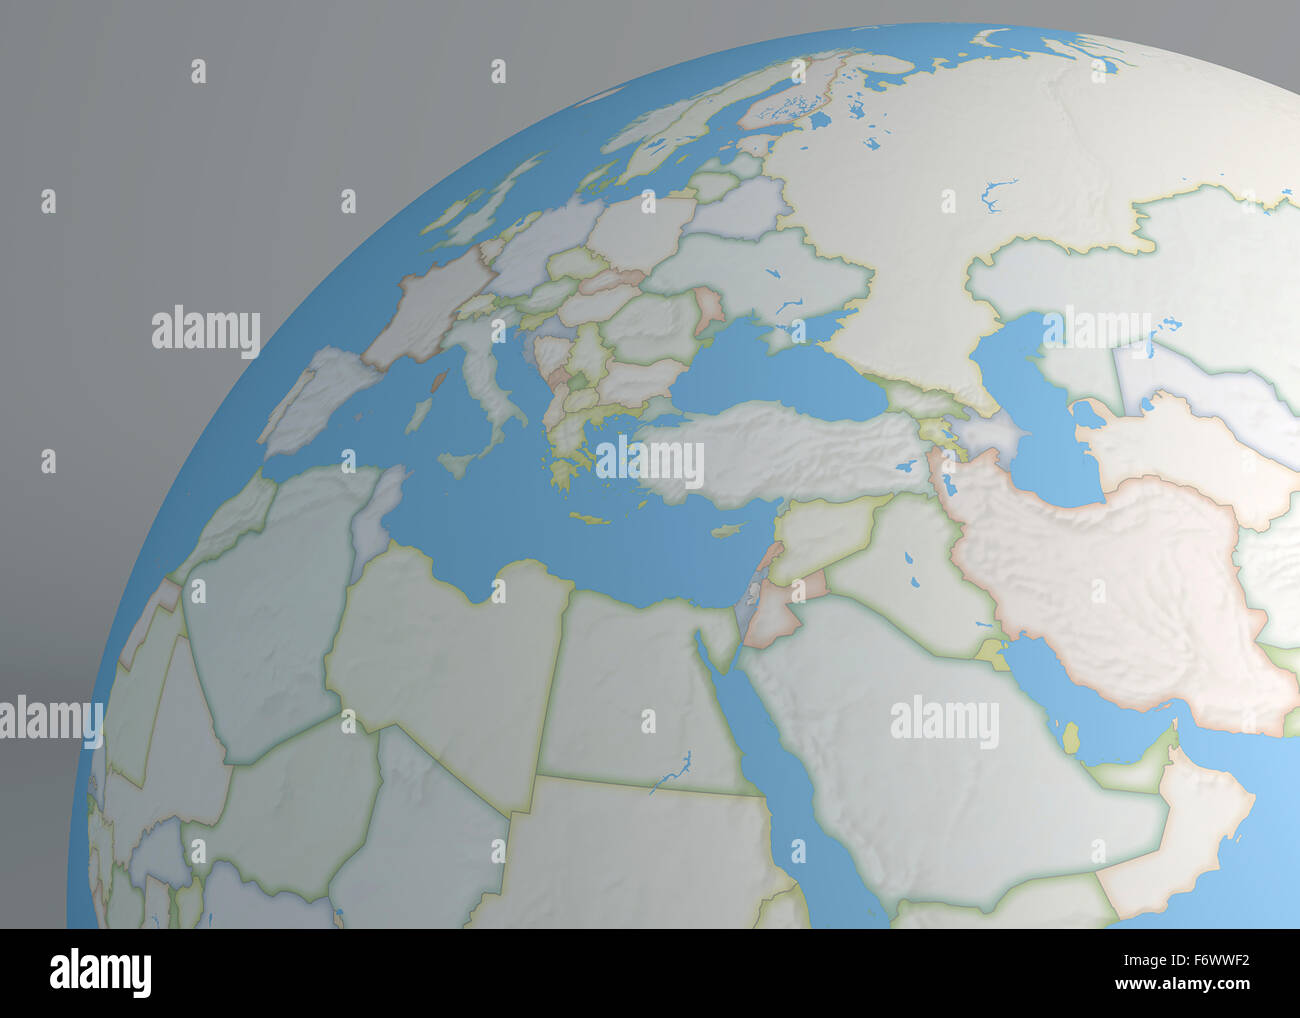 North Africa World Map.World Map Of Middle East Europe And North Africa Stock Photo